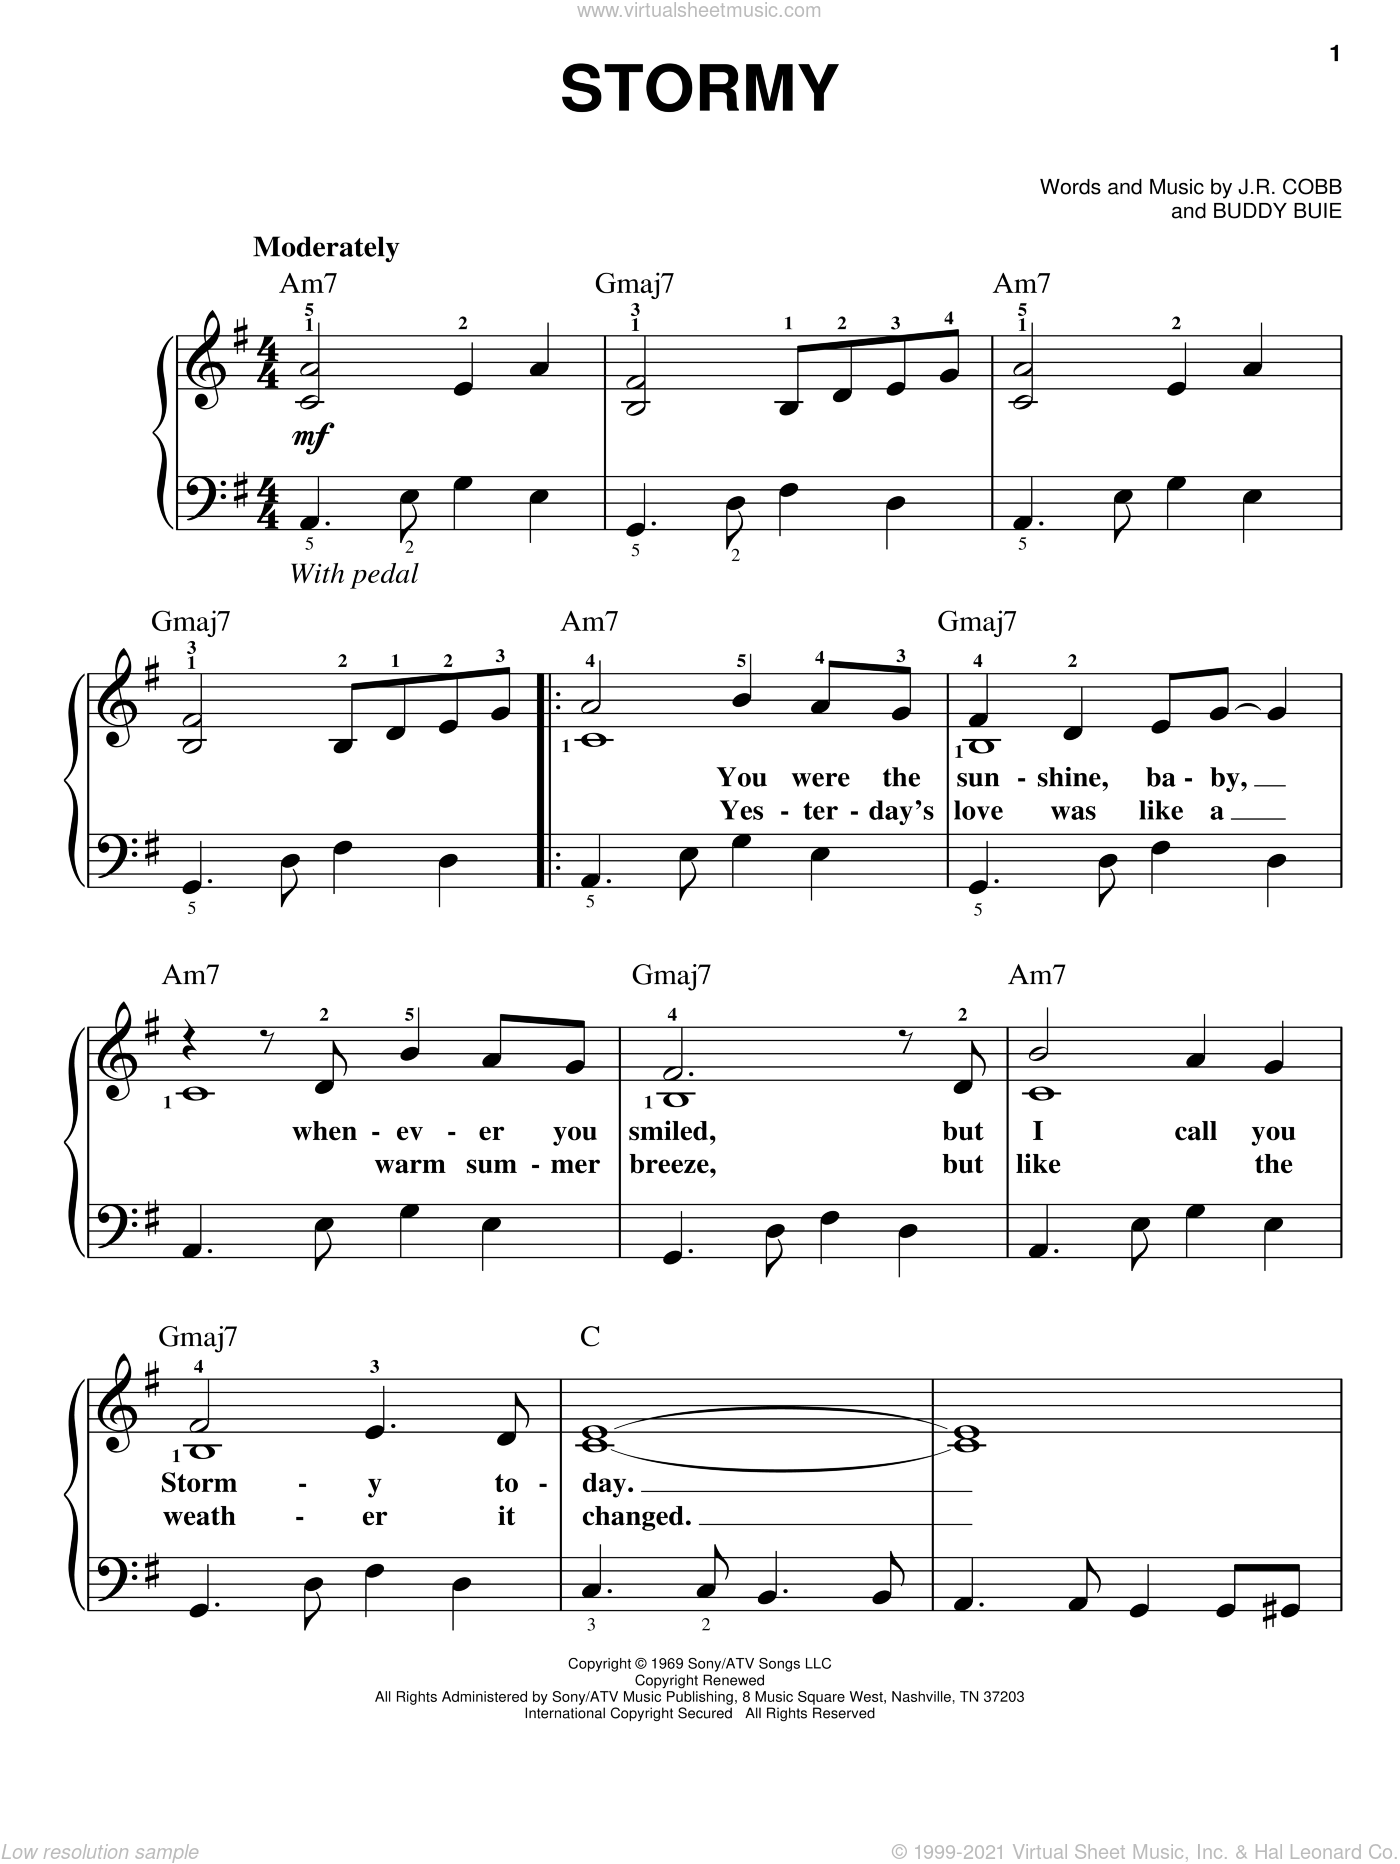 Stormy sheet music for piano solo by Classics IV, Buddy Buie and J.R. Cobb, easy skill level